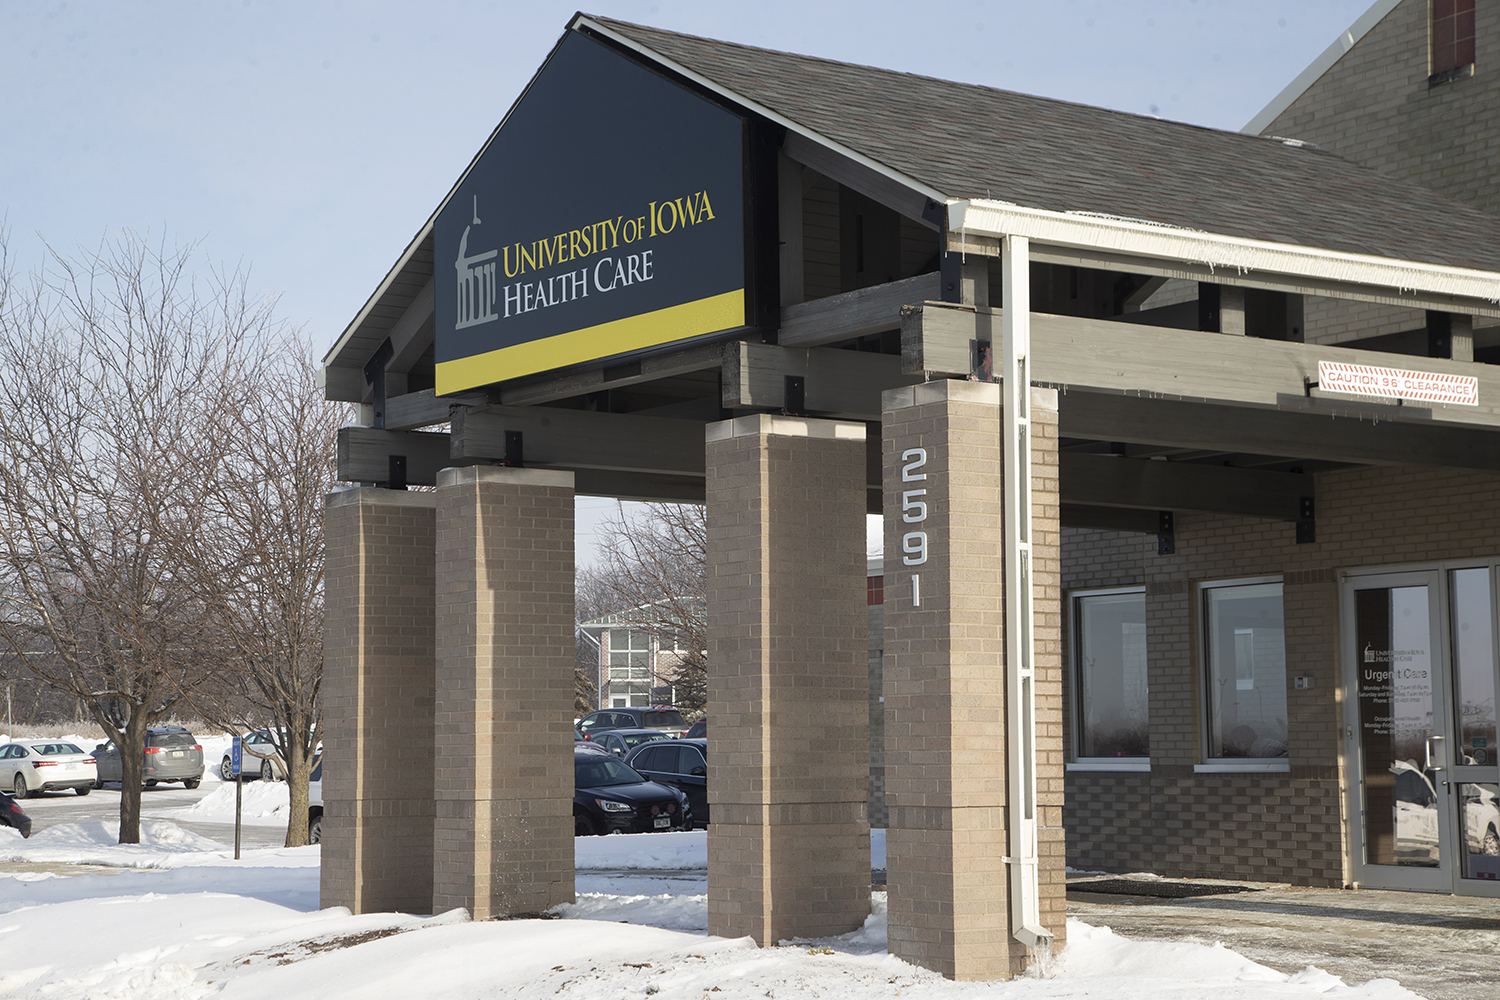 The University of Iowa Health Care urgent care Coralville location is seen on Tuesday, Jan. 21, 2020. The building is located at 2591 Holiday Road.